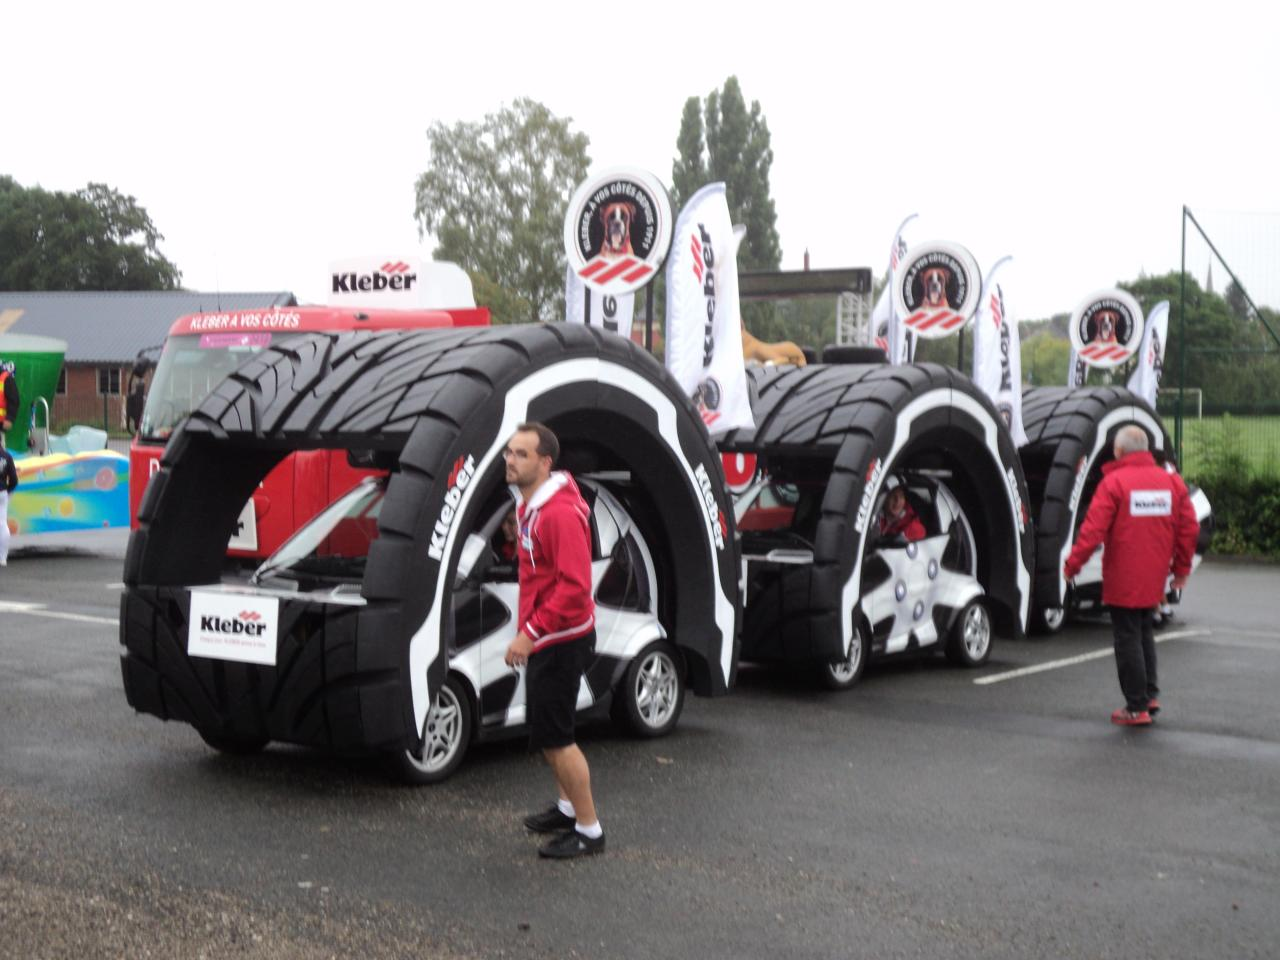 caravane du tour de france 2014 arras. Black Bedroom Furniture Sets. Home Design Ideas